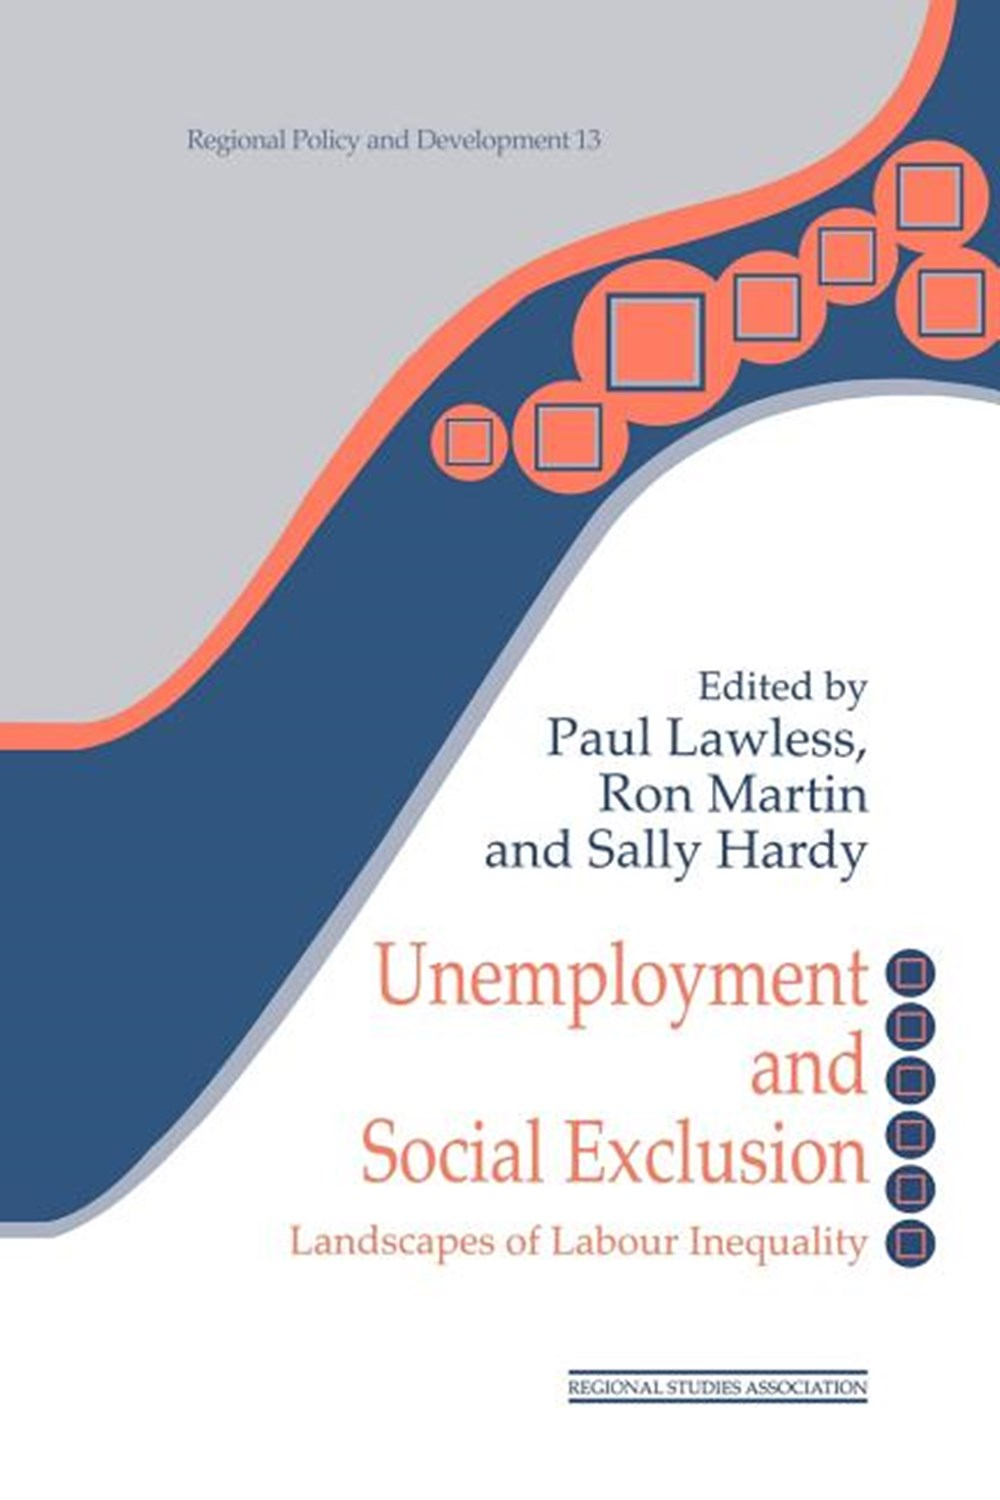 Unemployment and Social Exclusion Landscapes of Labour Inequality and Social Exclusion